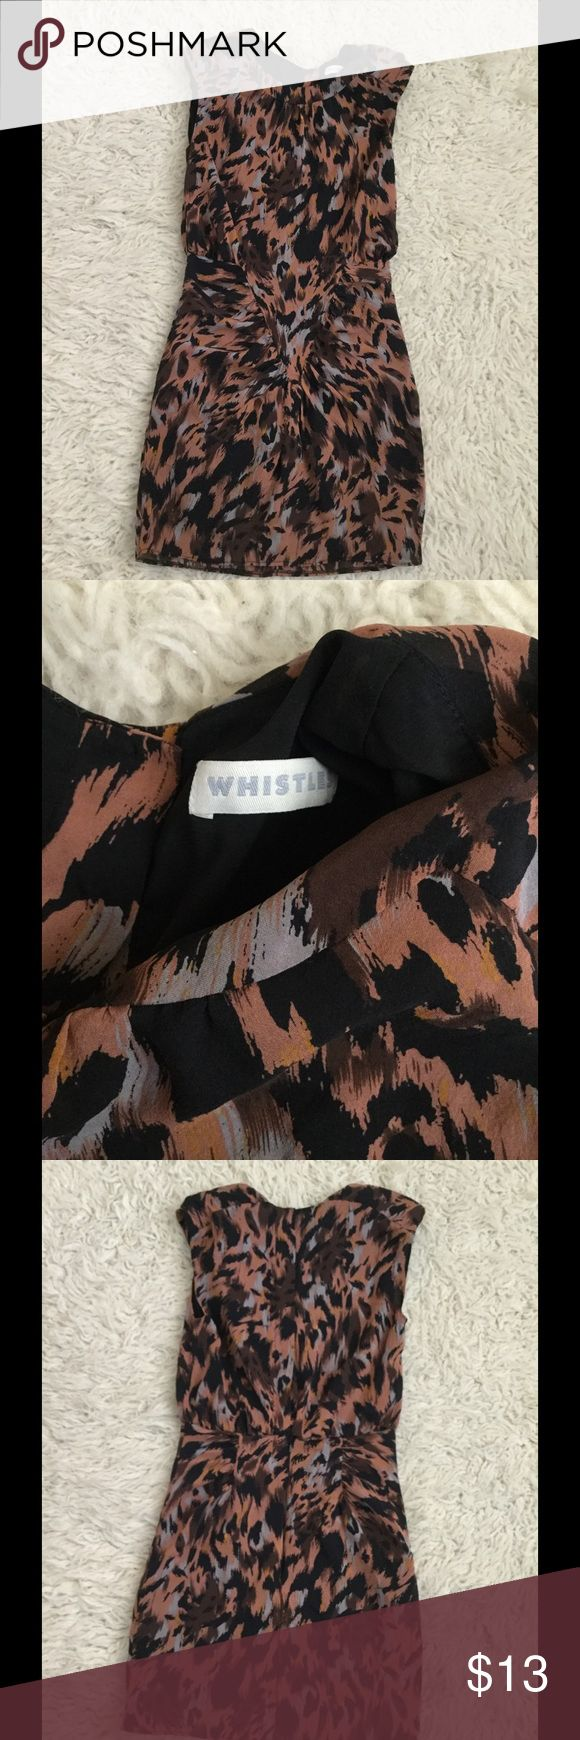 Whistles fully lined dress size XS Very cute dress, Whistles, size XS, in very good shape. Fully lined. Whistles Dresses Mini